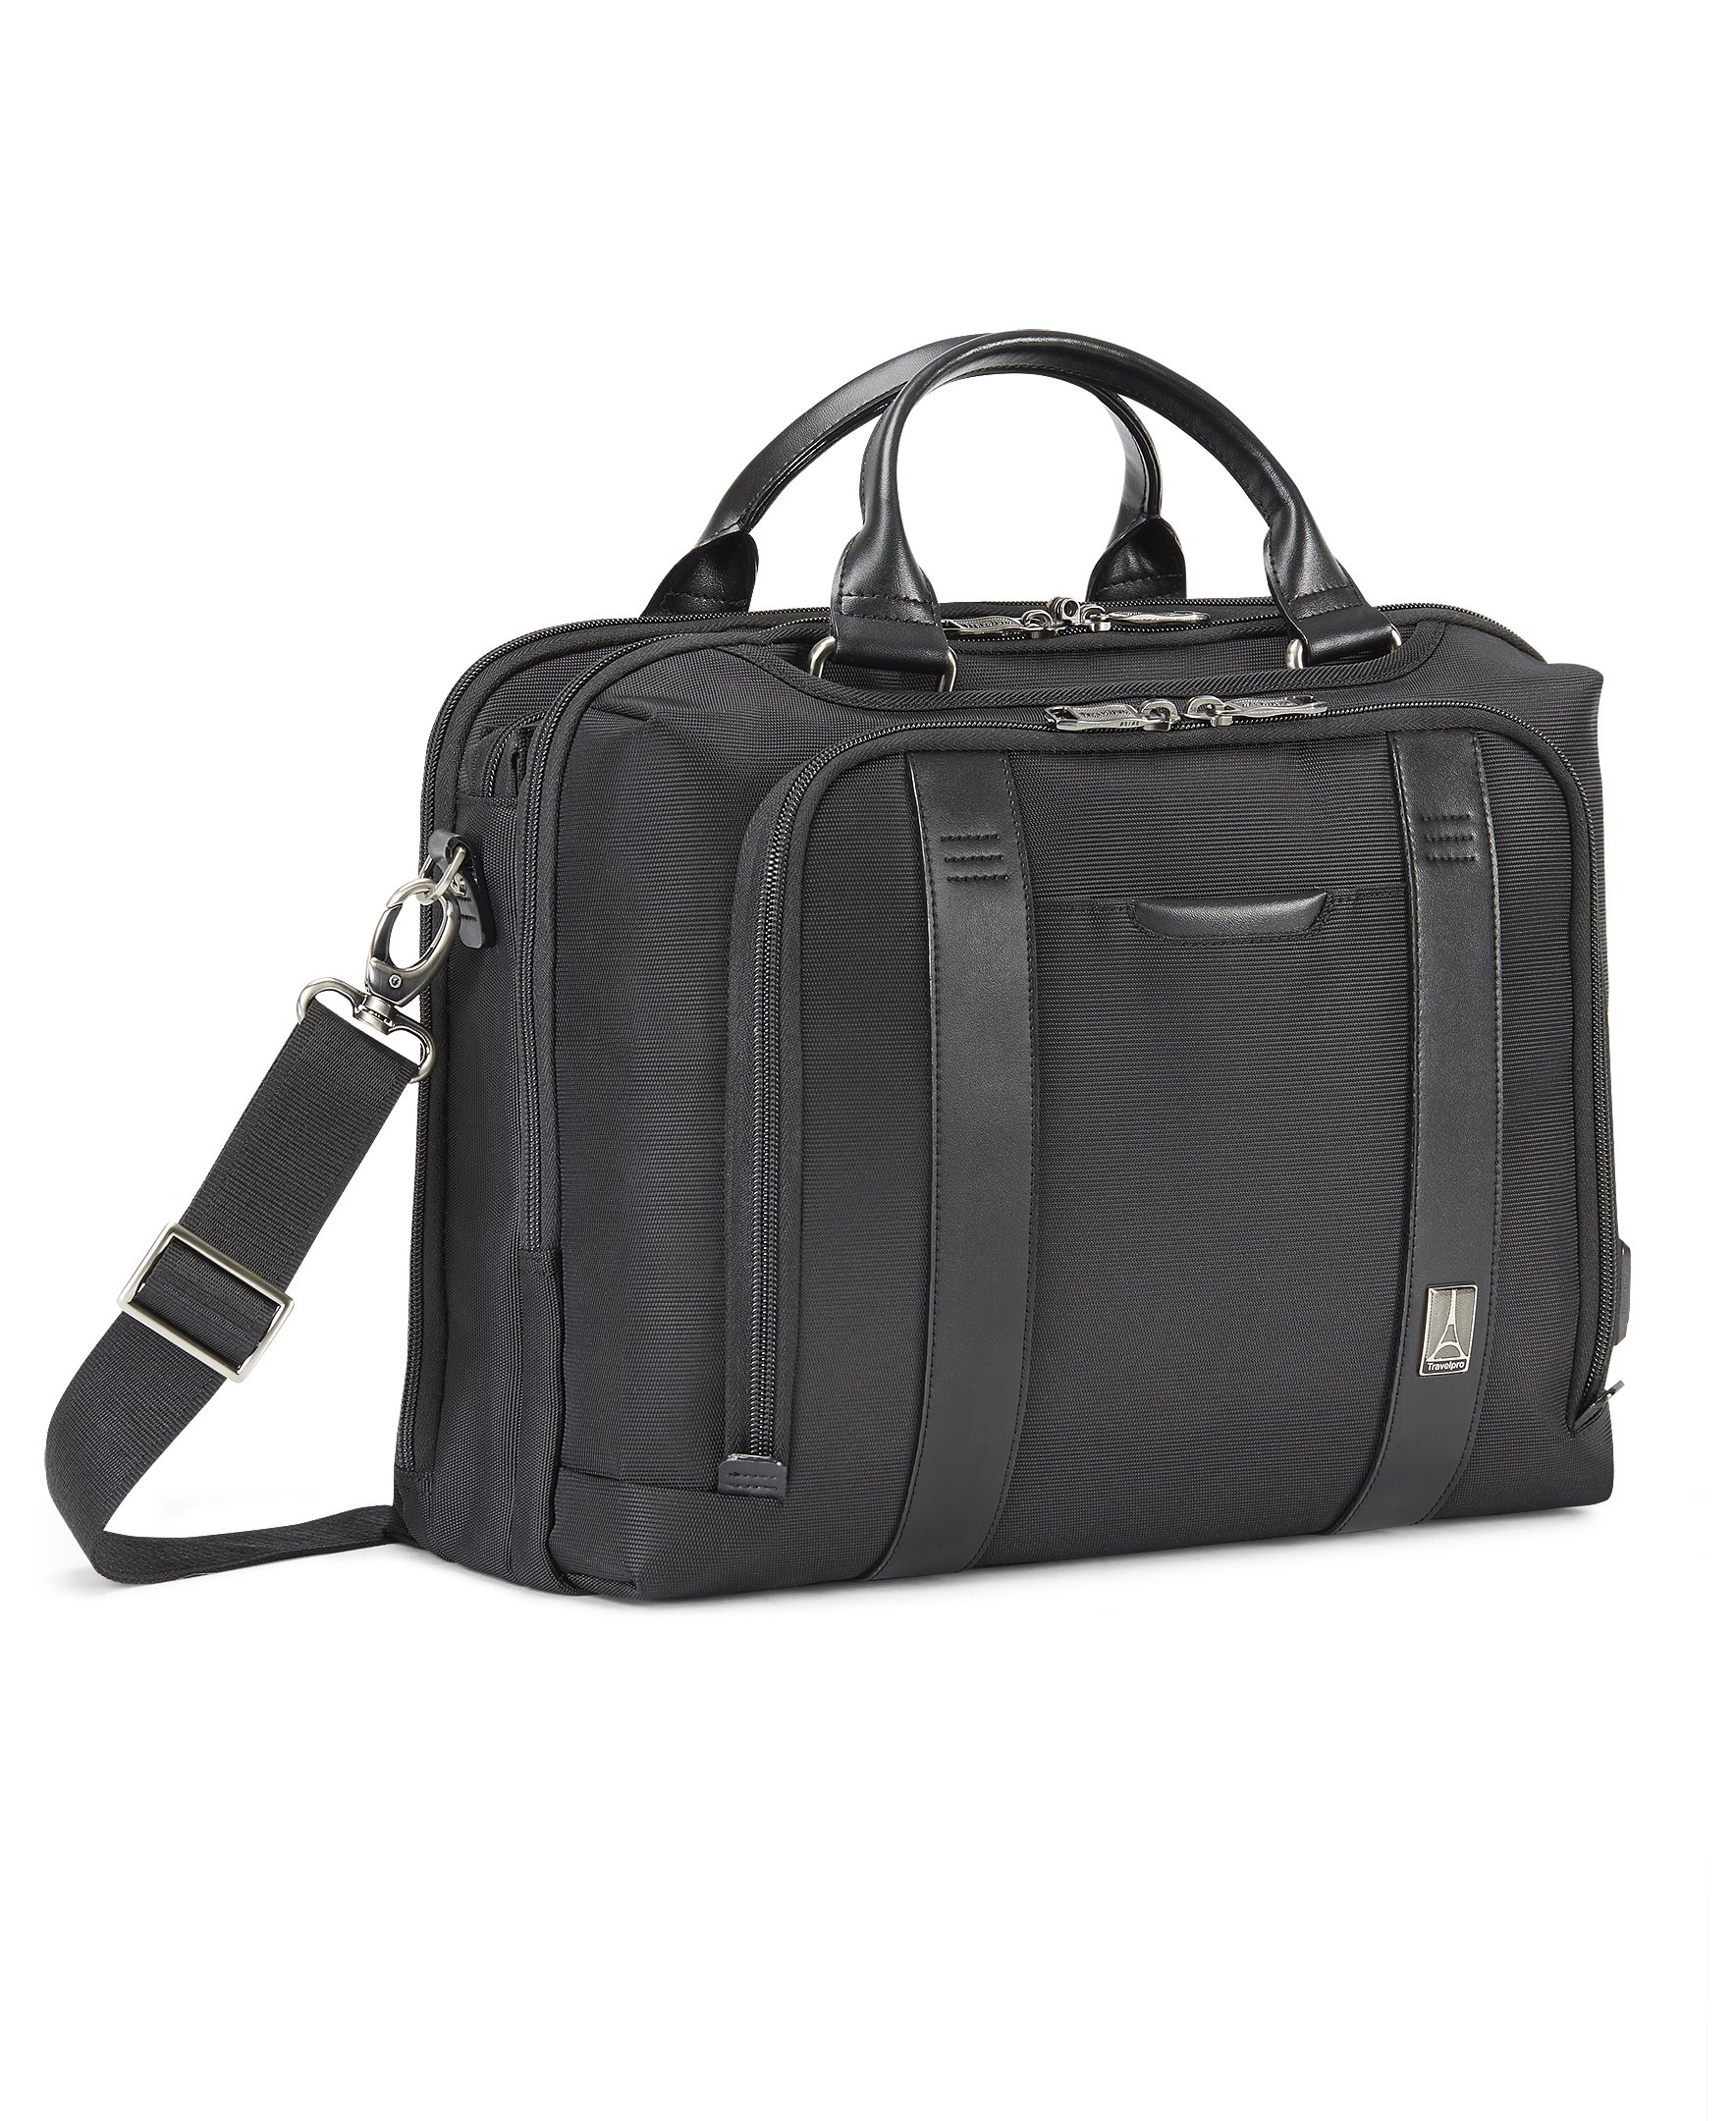 Travelpro Crew Executive Choice 2 Pilot Under-Seat Brief Bag, 16-in with USB port